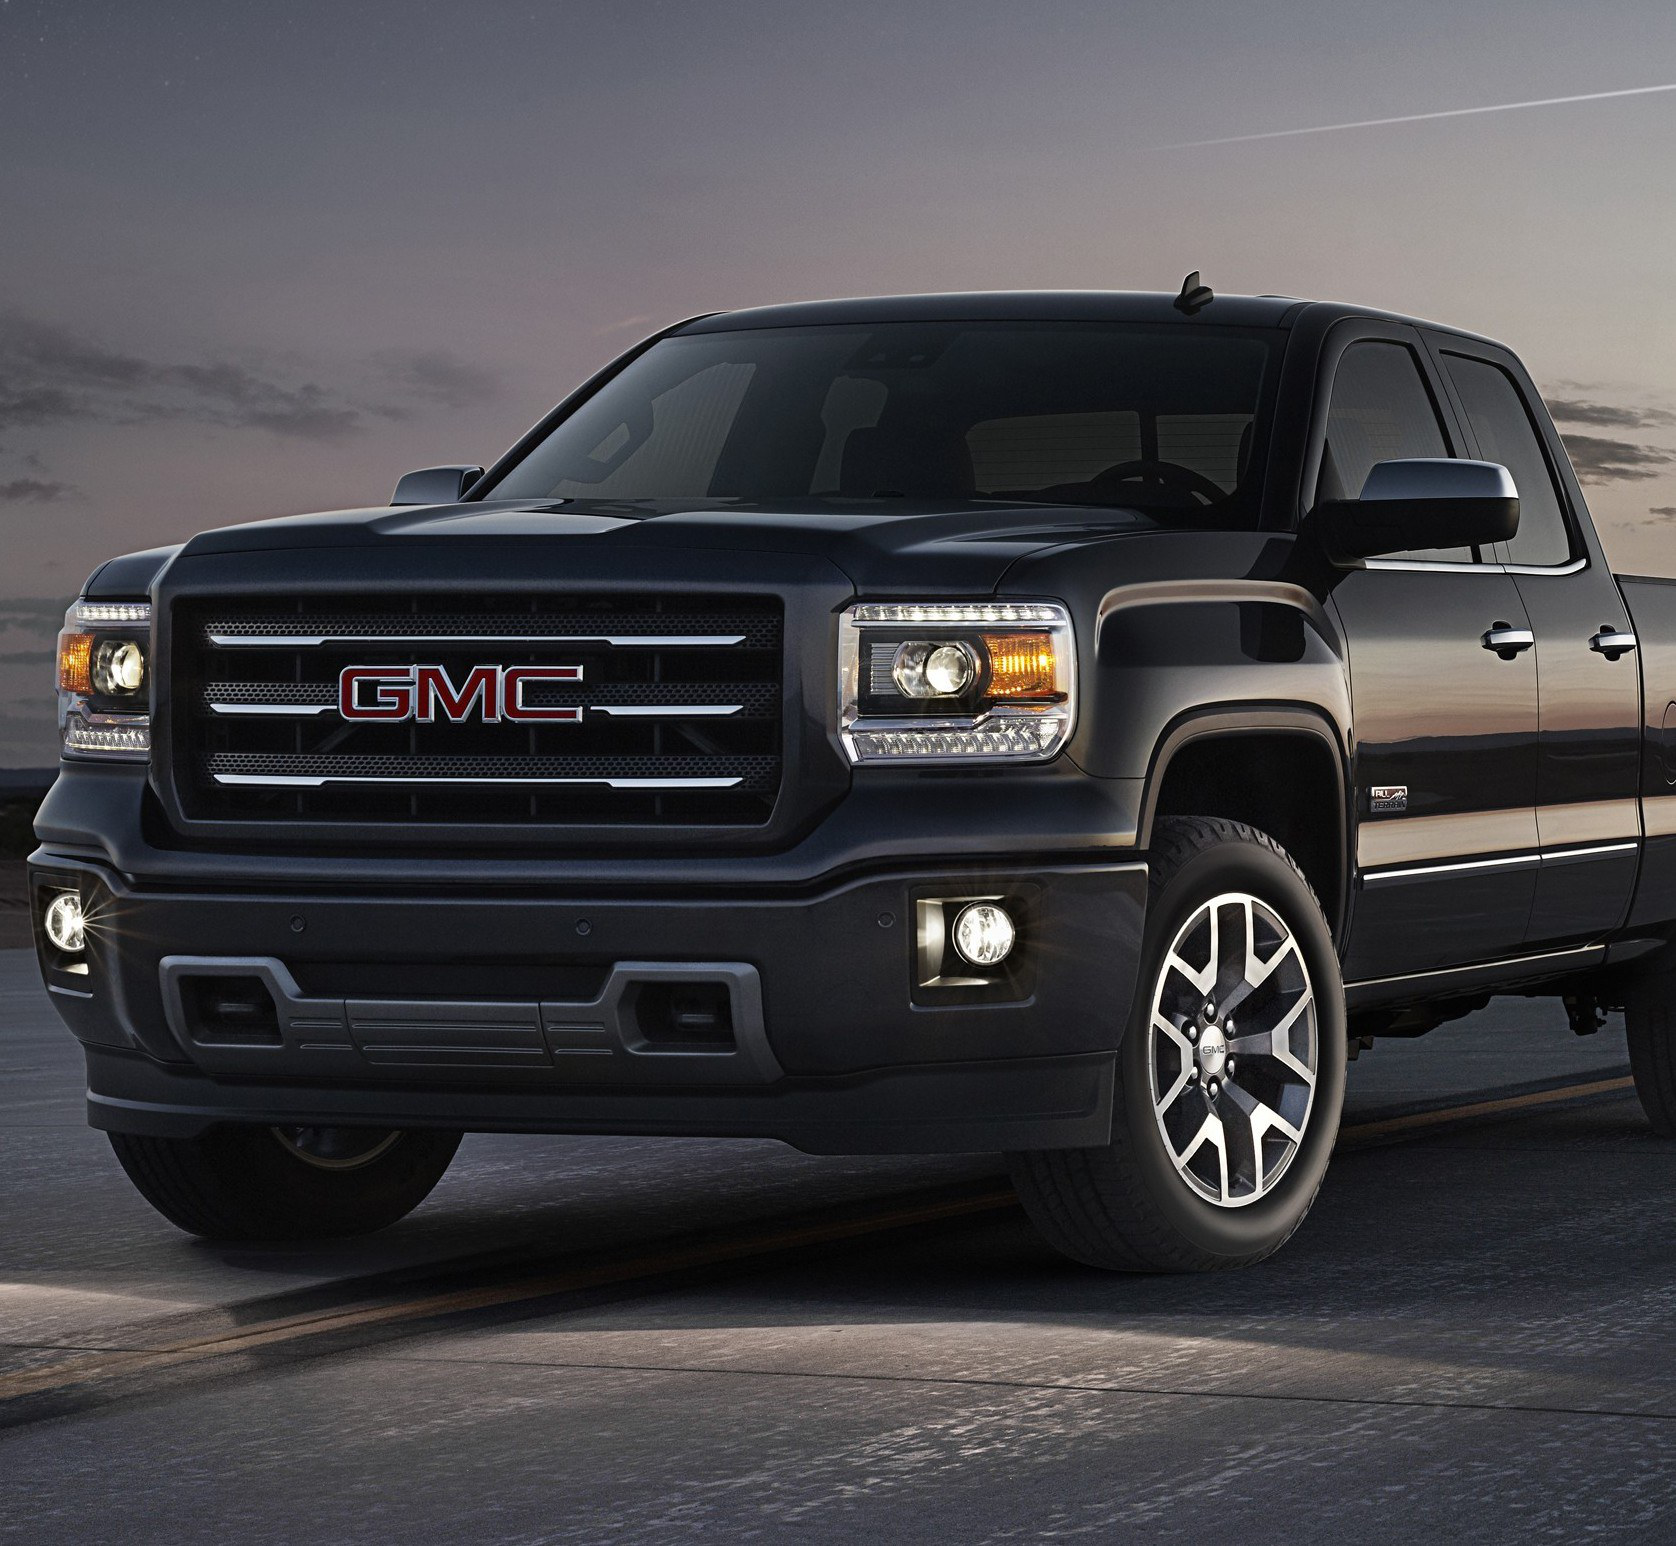 2014 GMC Sierra All Terrain Extended Cab Front Three Quarter in